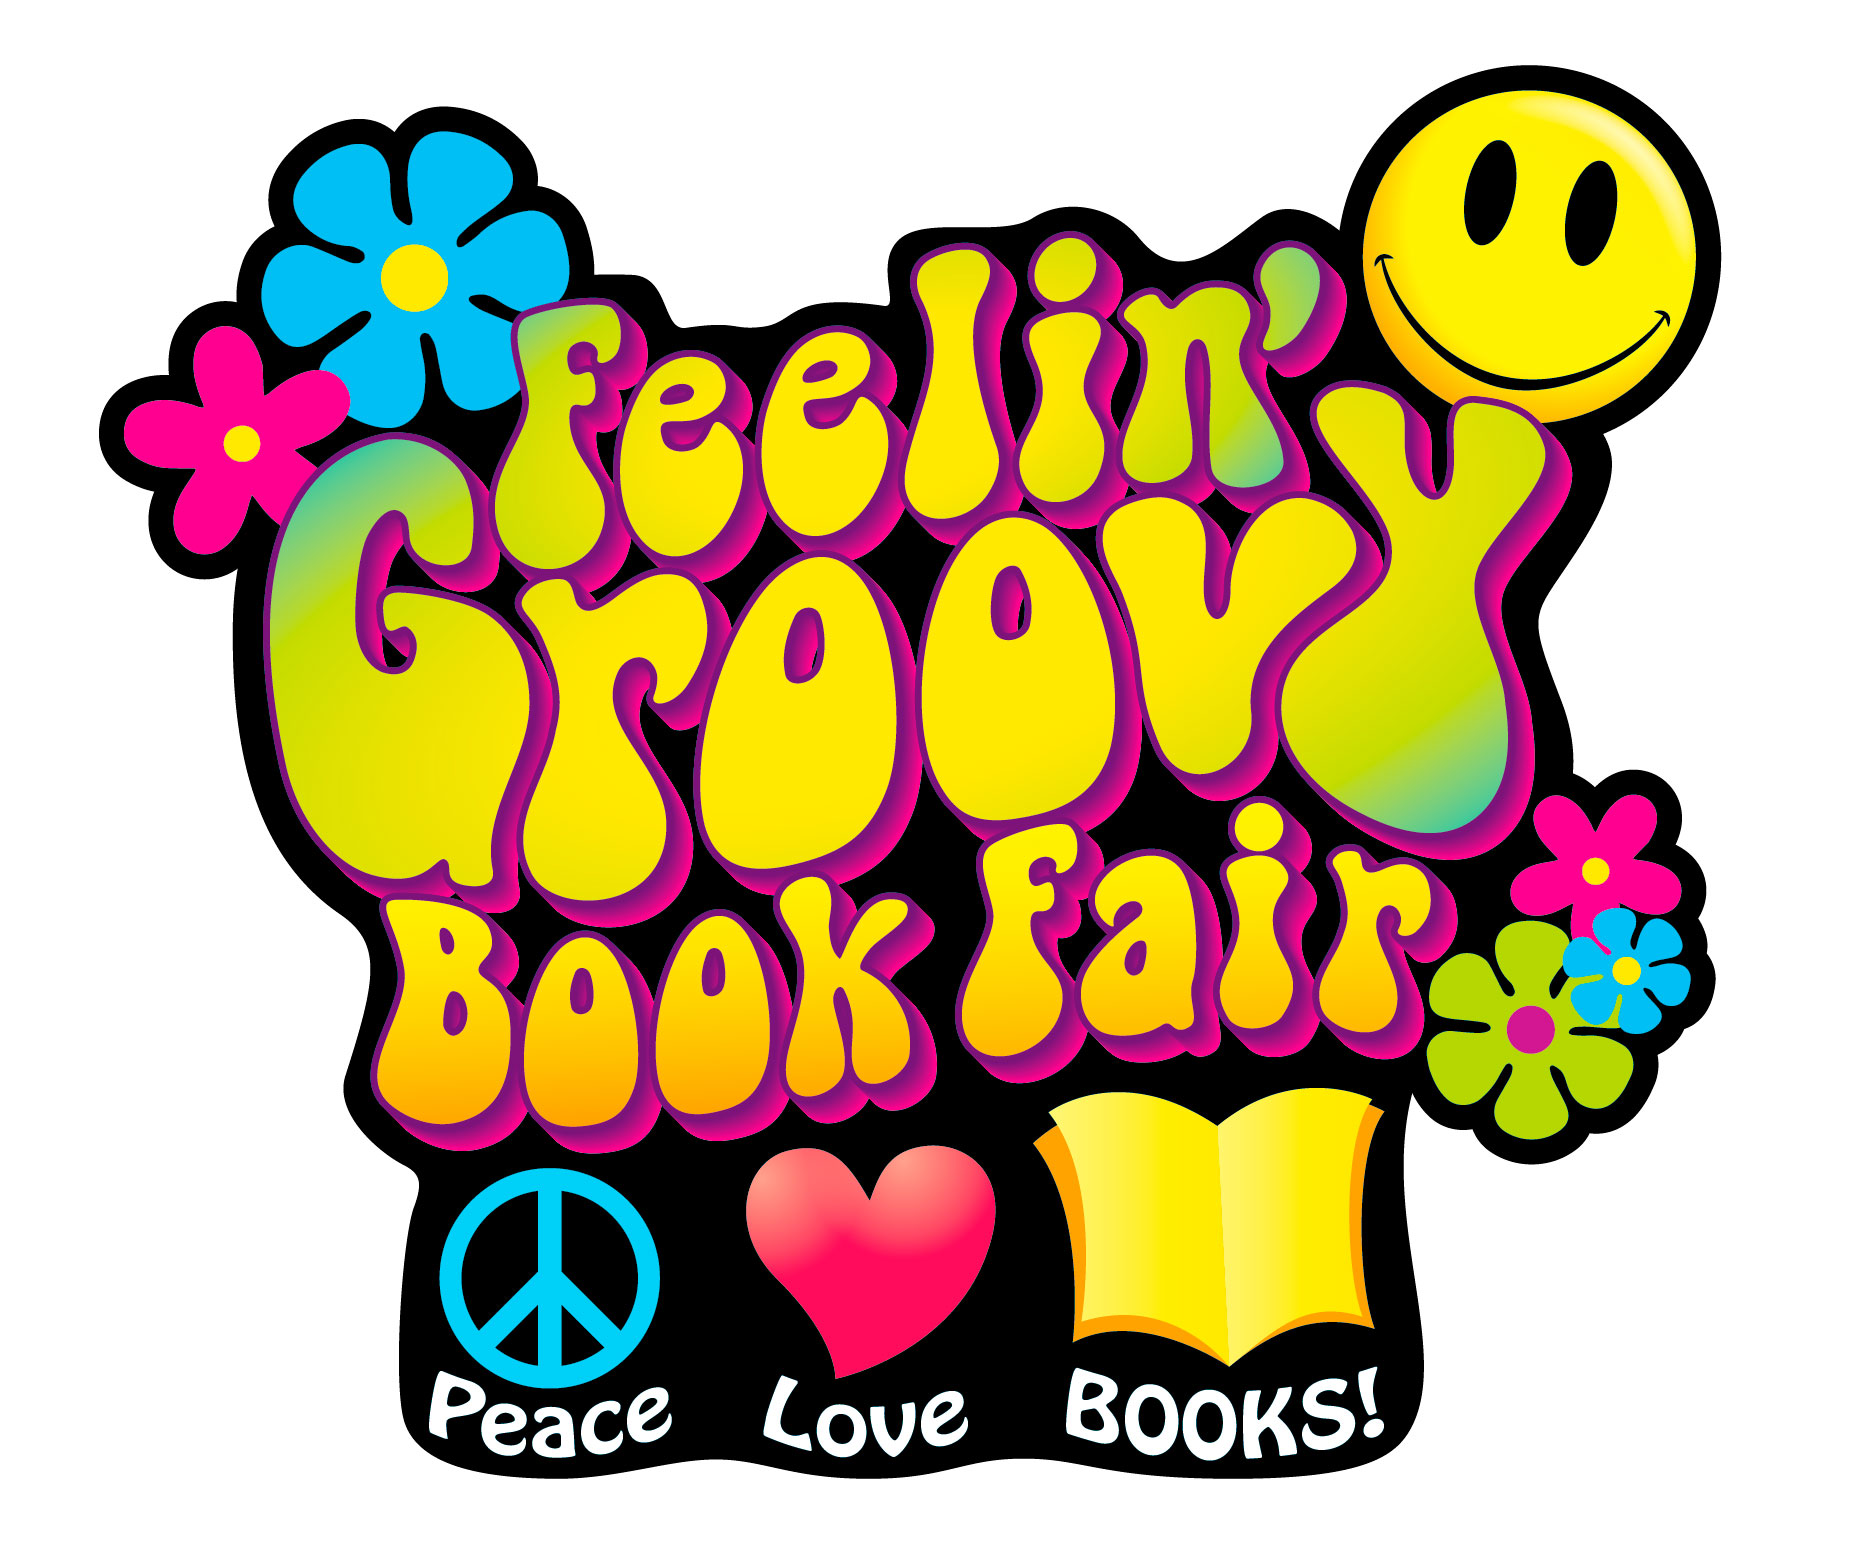 Groovy pictures clip art.